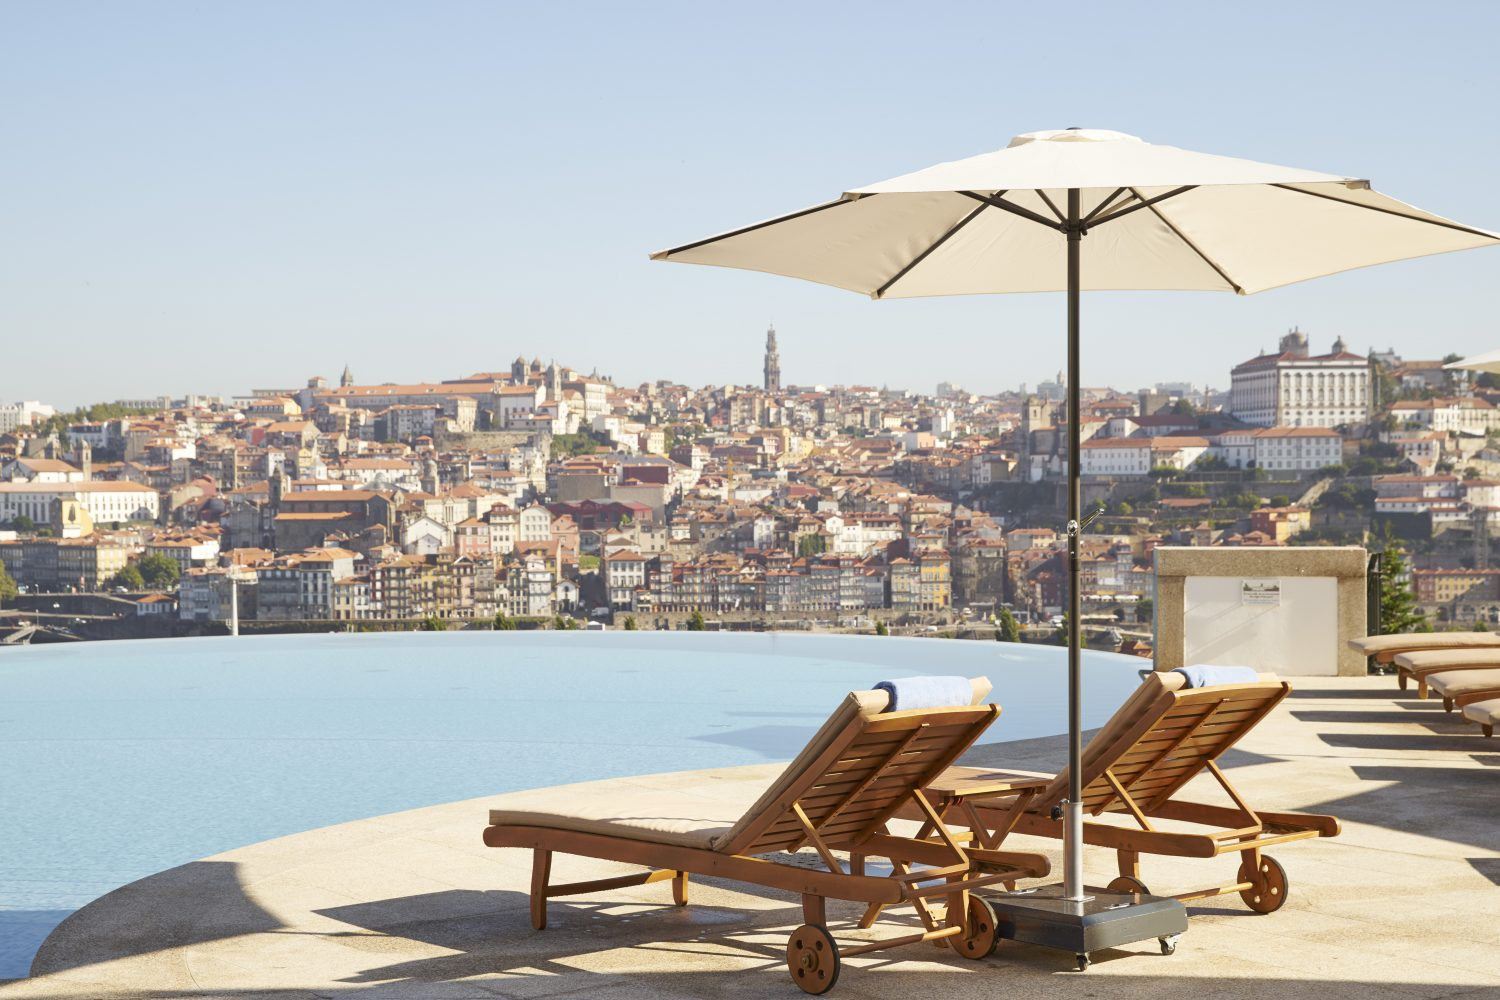 View to Porto from Infinity Pool Outdoor at Nightat Yeatman Hotel Relais & Chateaux